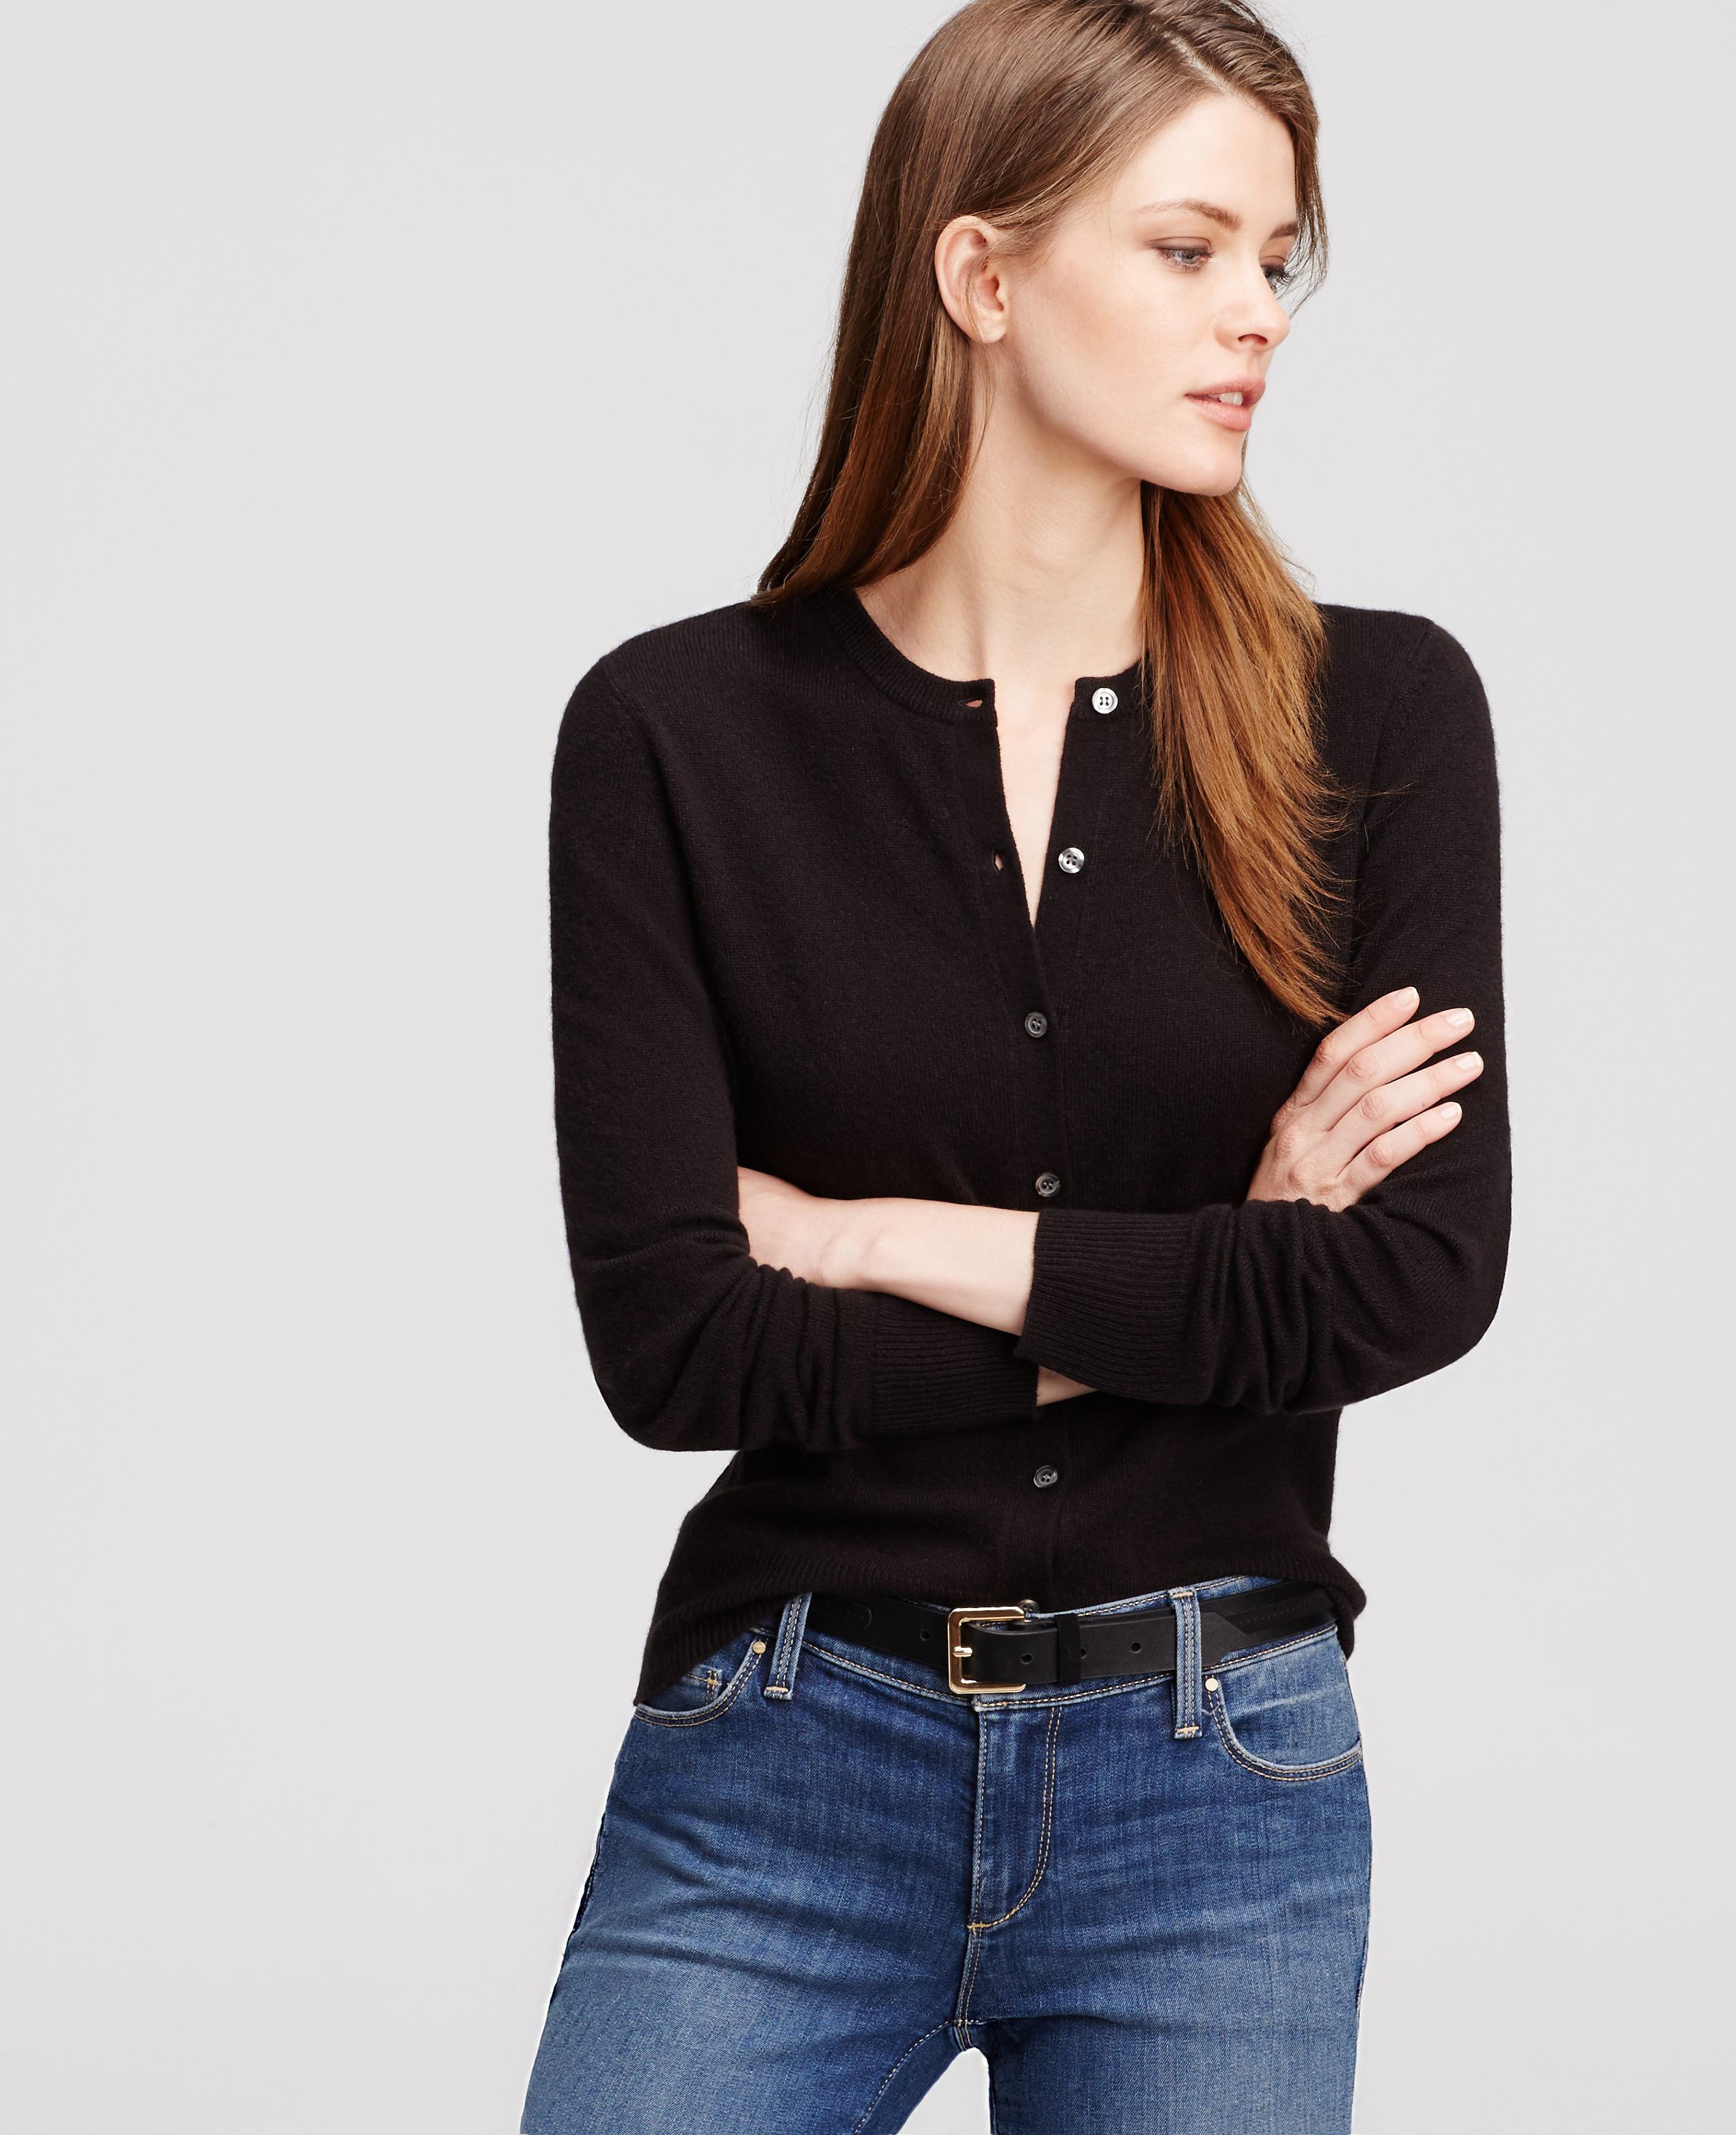 Ann taylor Petite Cashmere Crew Neck Cardigan in Black | Lyst